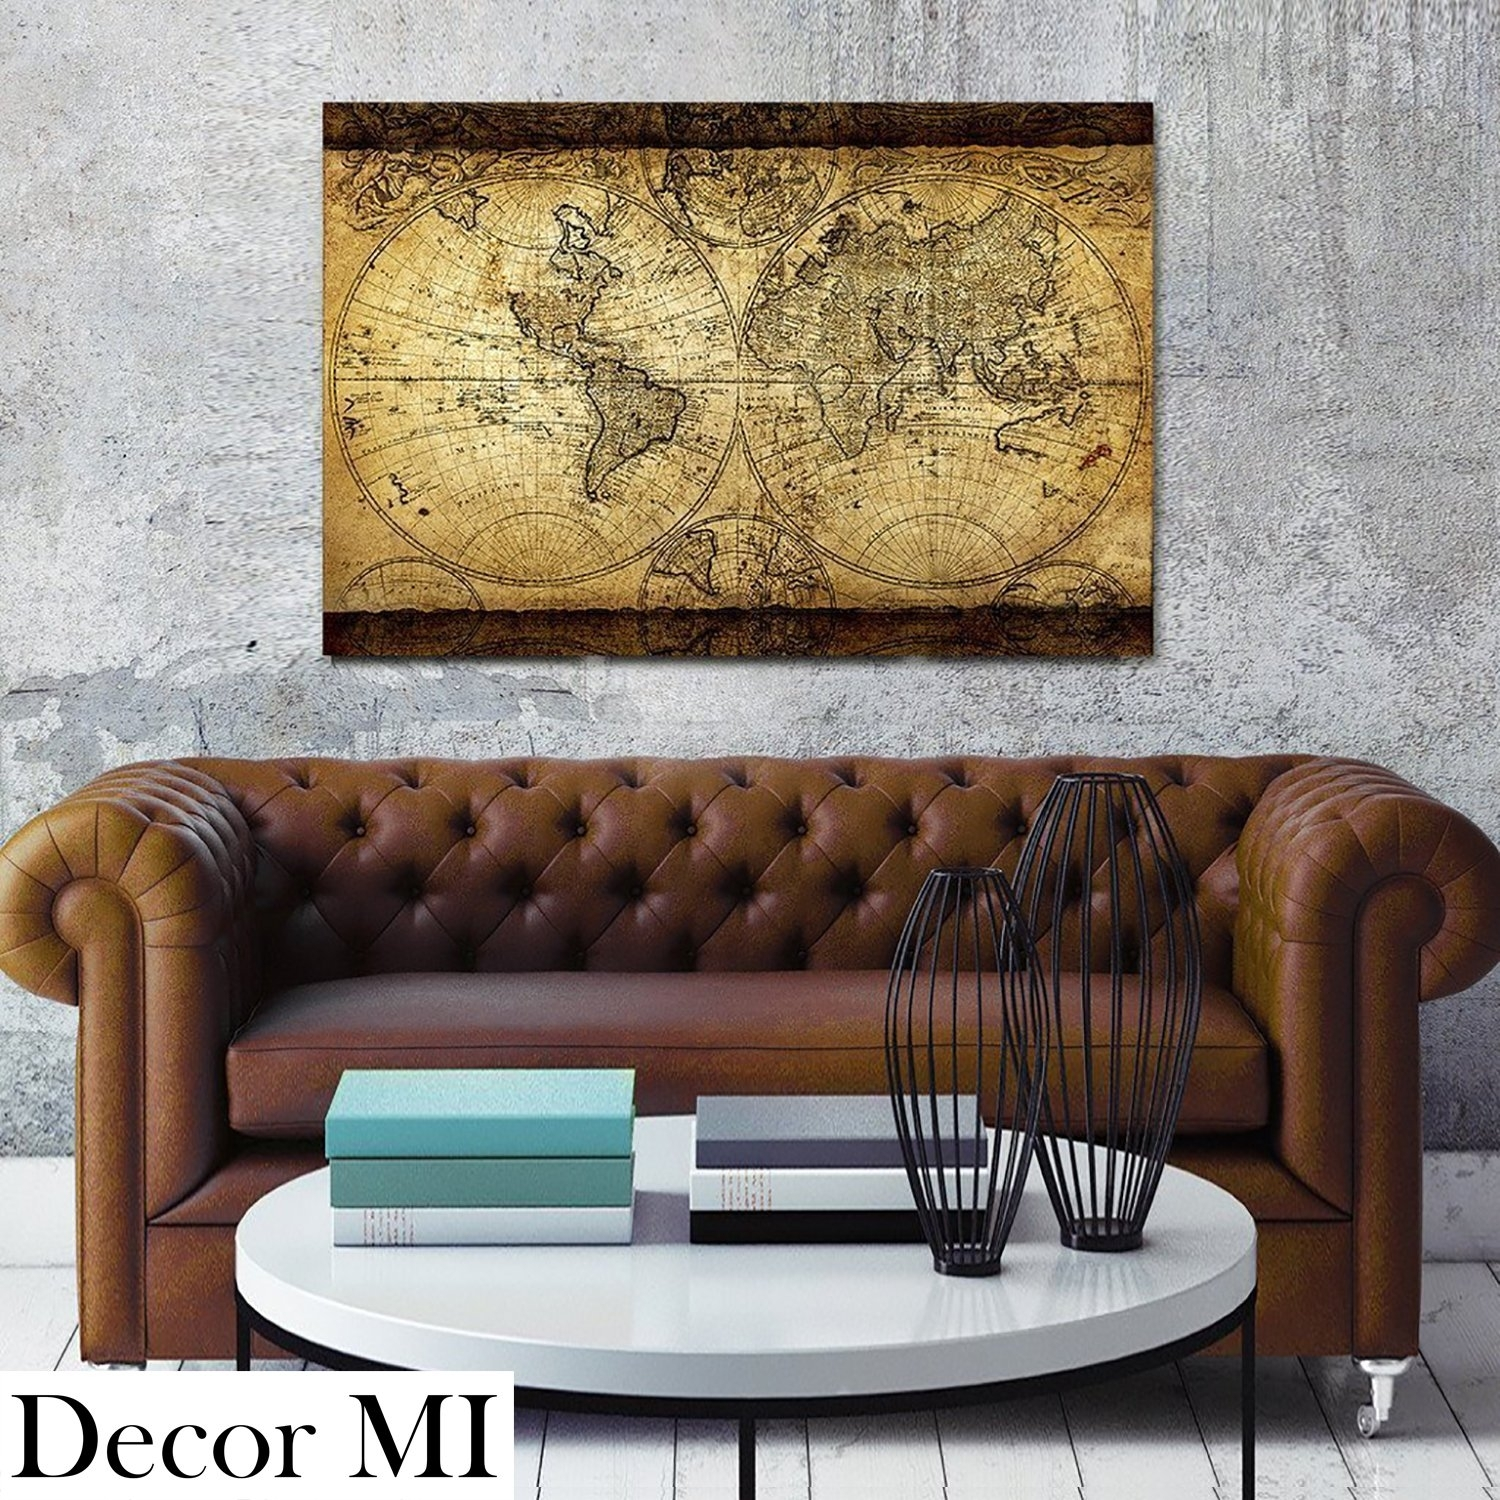 Canvas Wall Art Vintage Retro World Map For Living Room Office Home within Vintage Map Wall Art (Image 3 of 20)